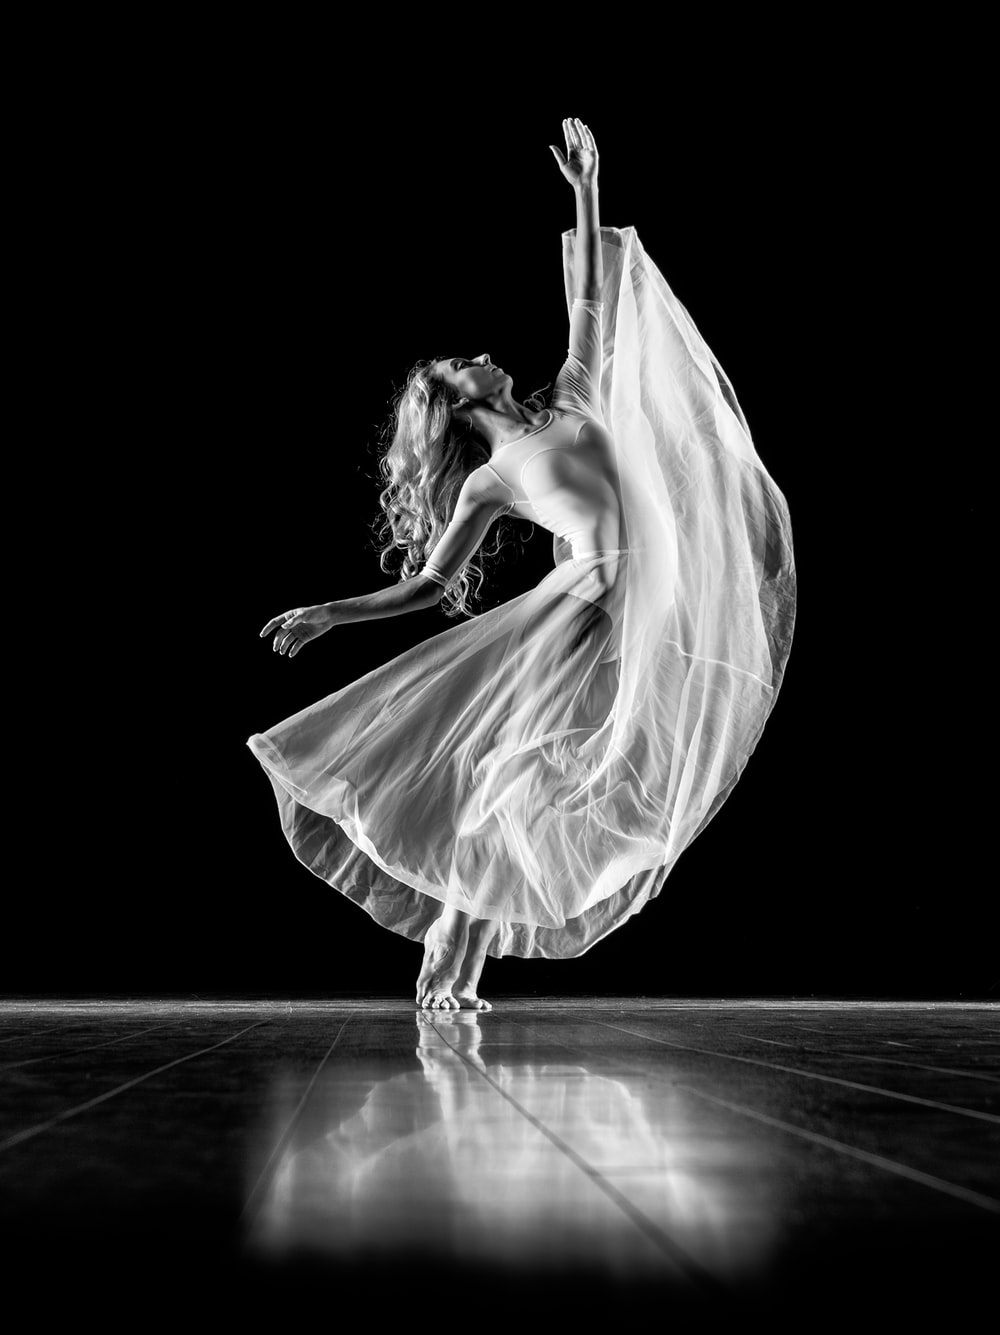 grayscale photography of woman doing ballet